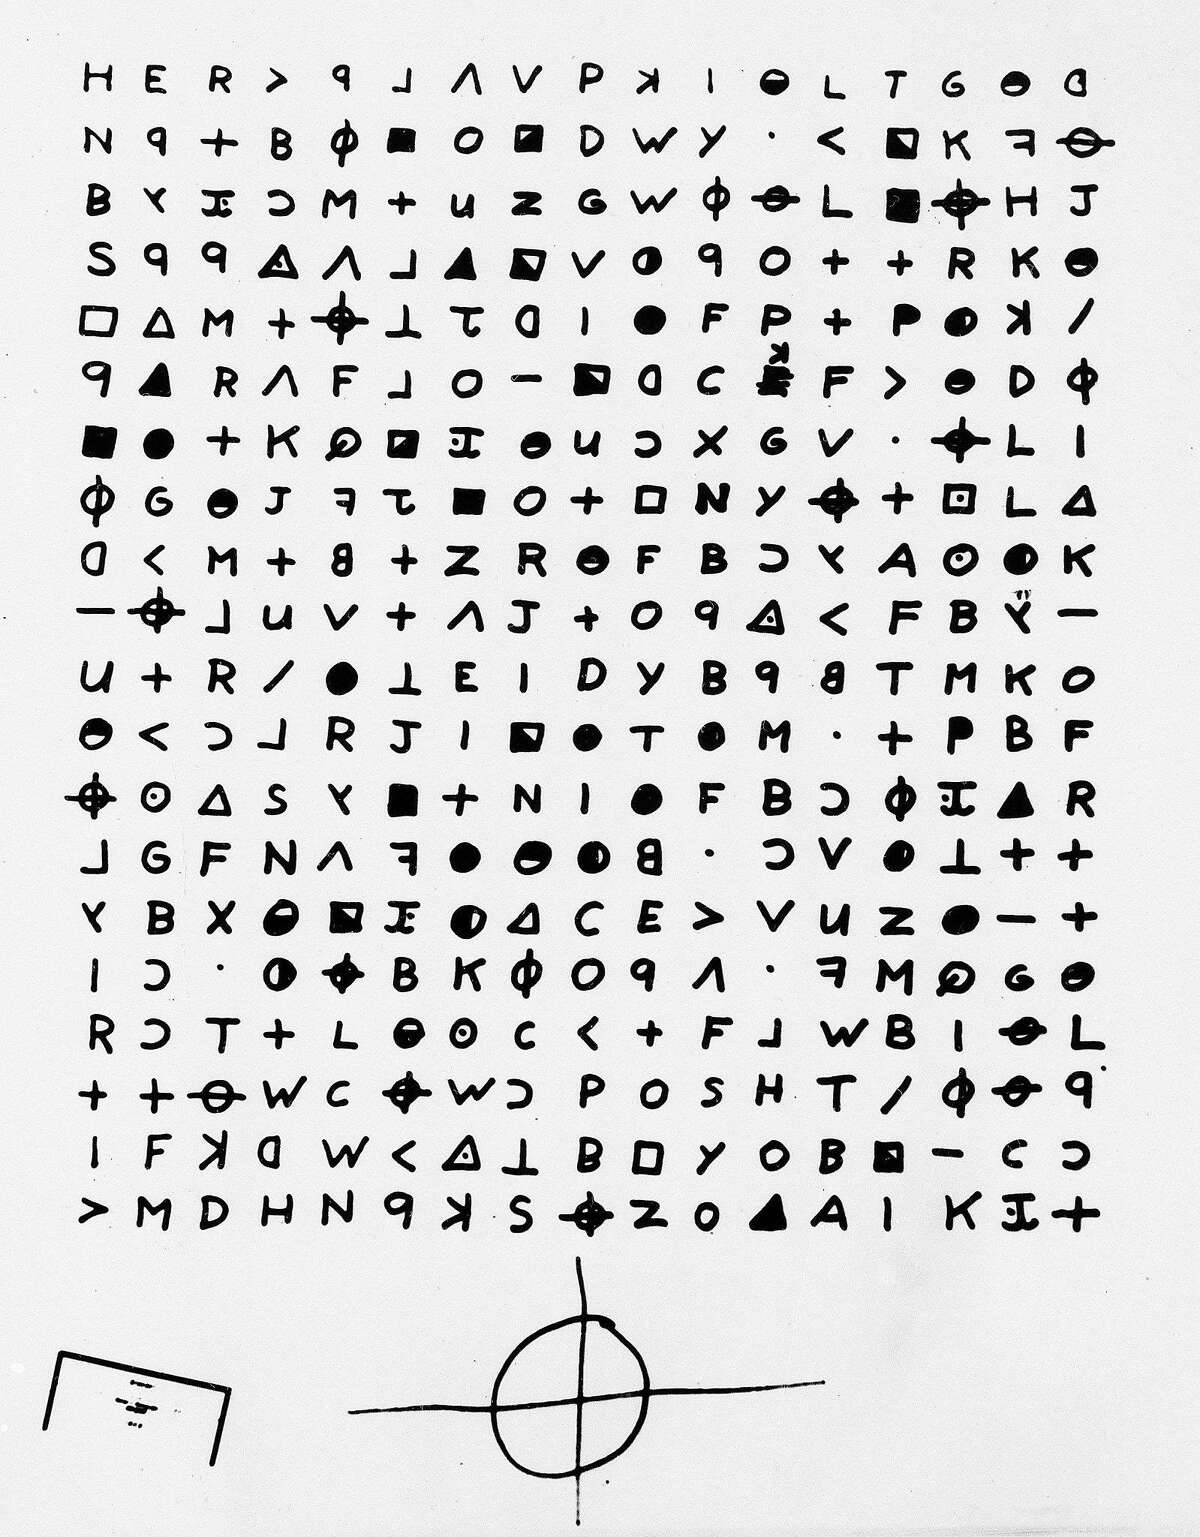 This is an undated copy of a cryptogram sent to the San Francisco Chronicle, Nov. 11, 1969 by the Zodiac Killer. The Zodiac killer is blamed for at least five murders in 1968 and 1969 in the San Francisco Bay Area. He was never caught, 150 anniversary maybe